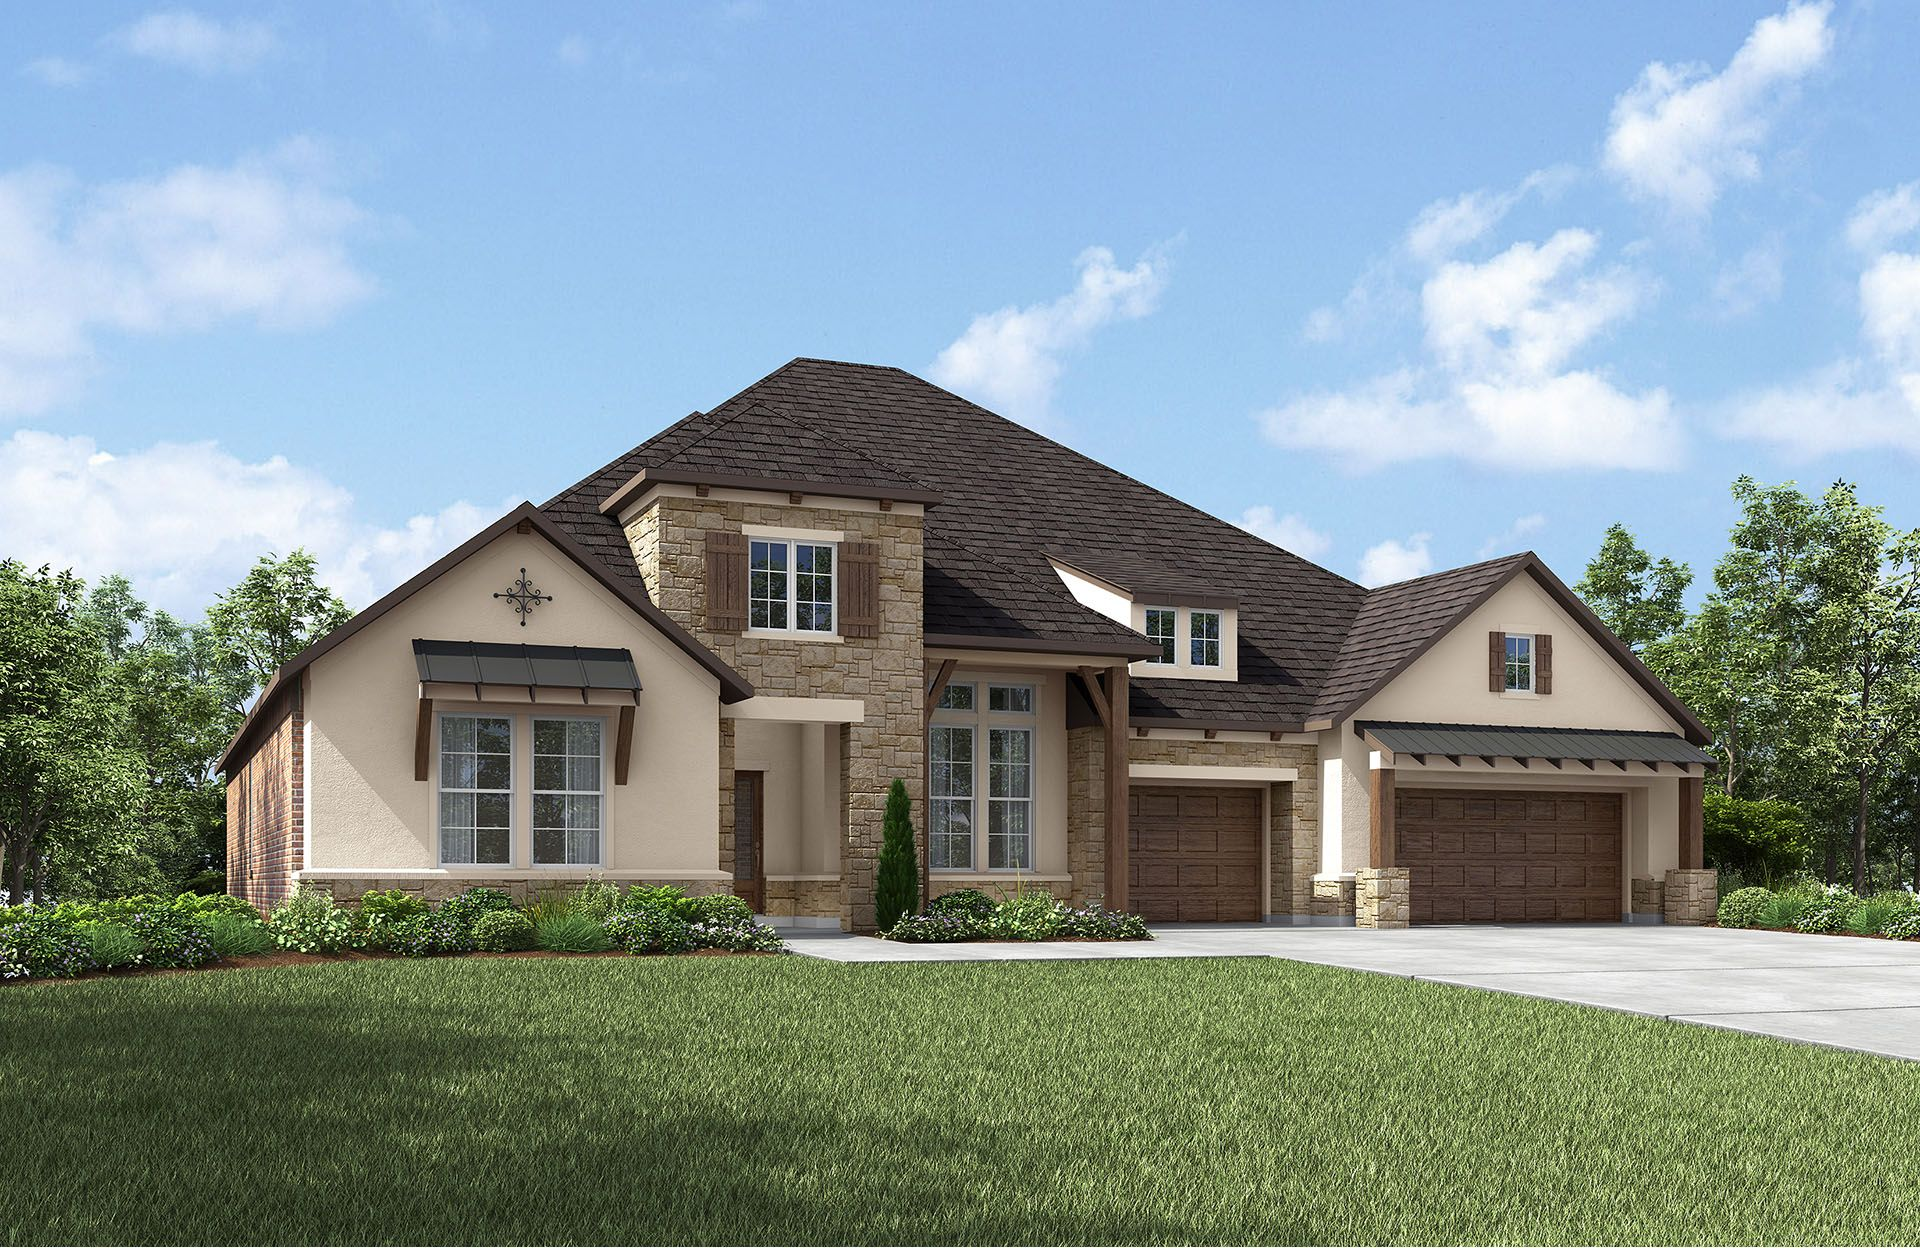 Single Family for Sale at Royal Brook At Kingwood - Castella 3306 Lockridge Harbor Lane Porter, Texas 77365 United States